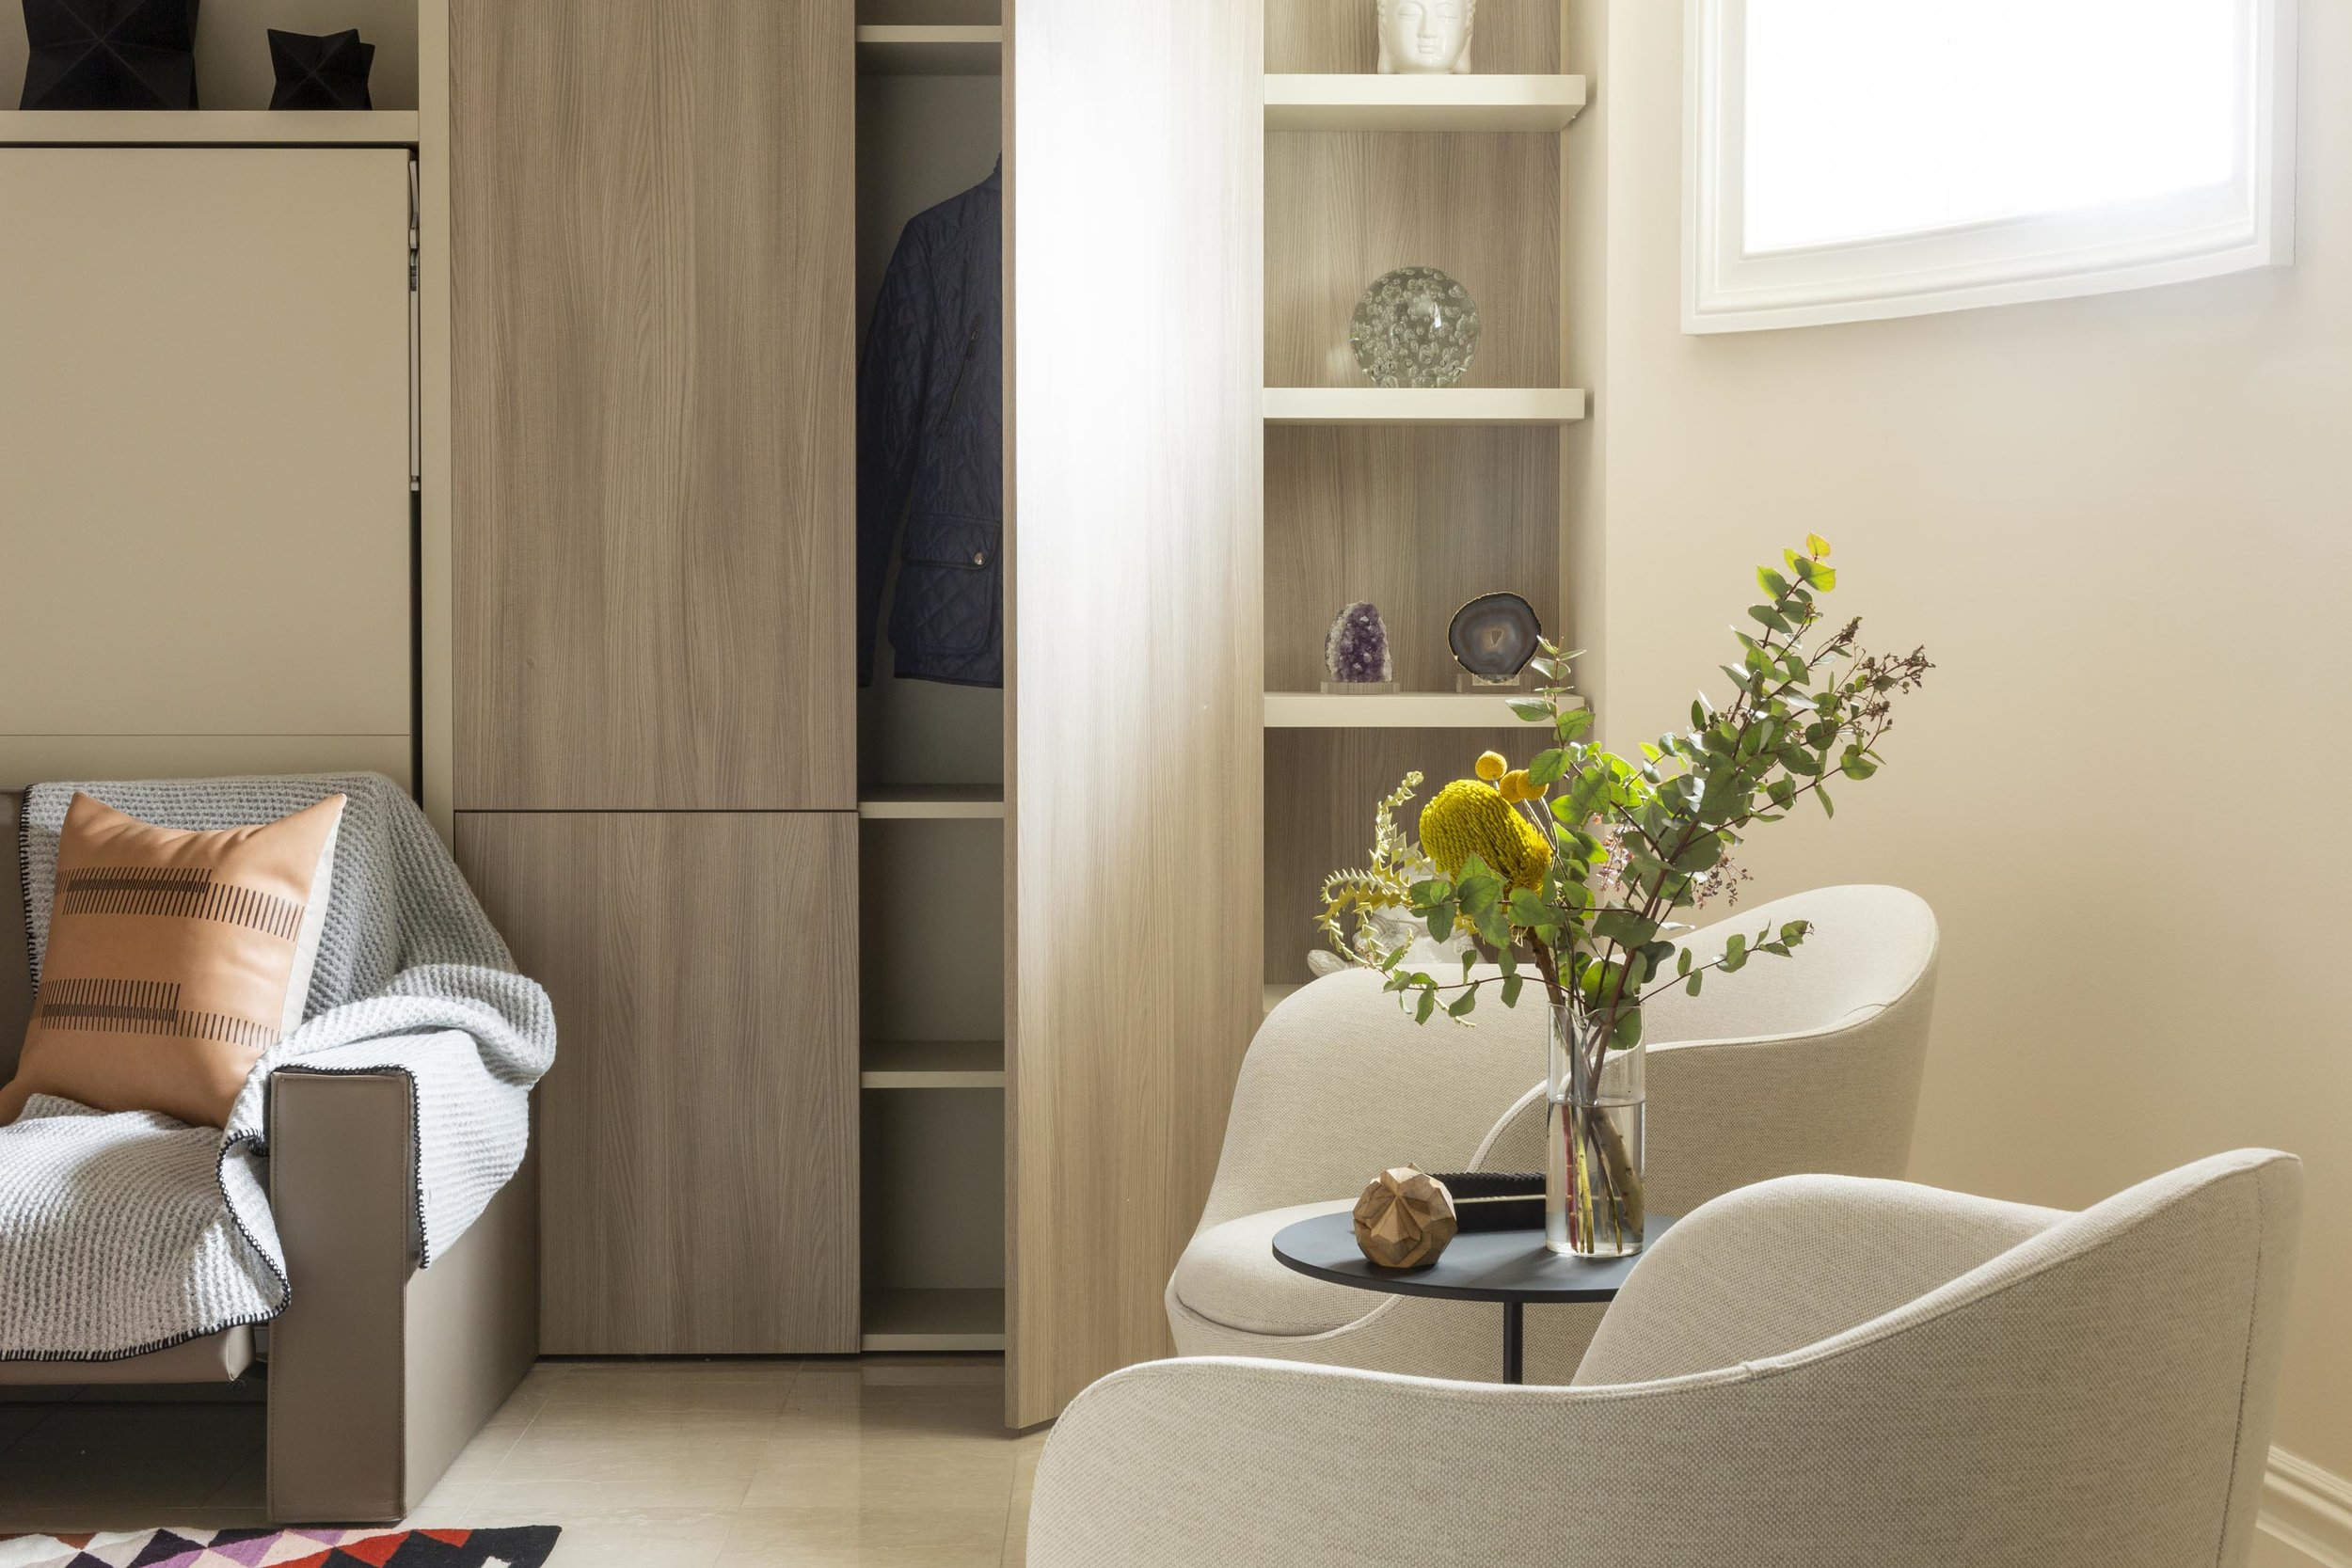 A room with open cabinet, armchair and flowers in a clear glass